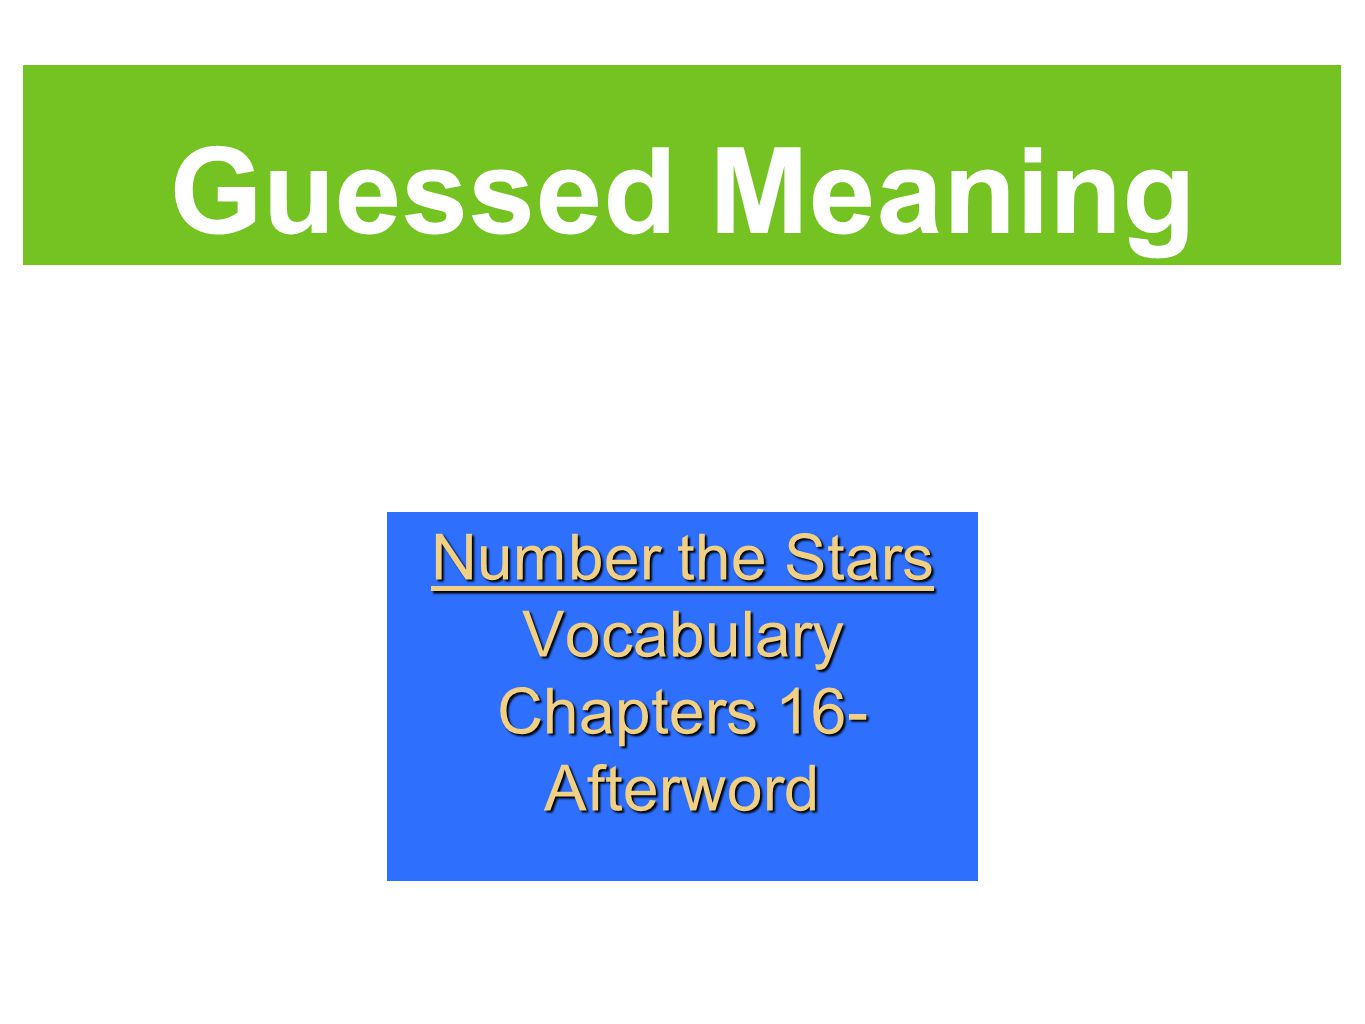 Guessed Meaning Number the Stars Vocabulary Chapters 16- Afterword